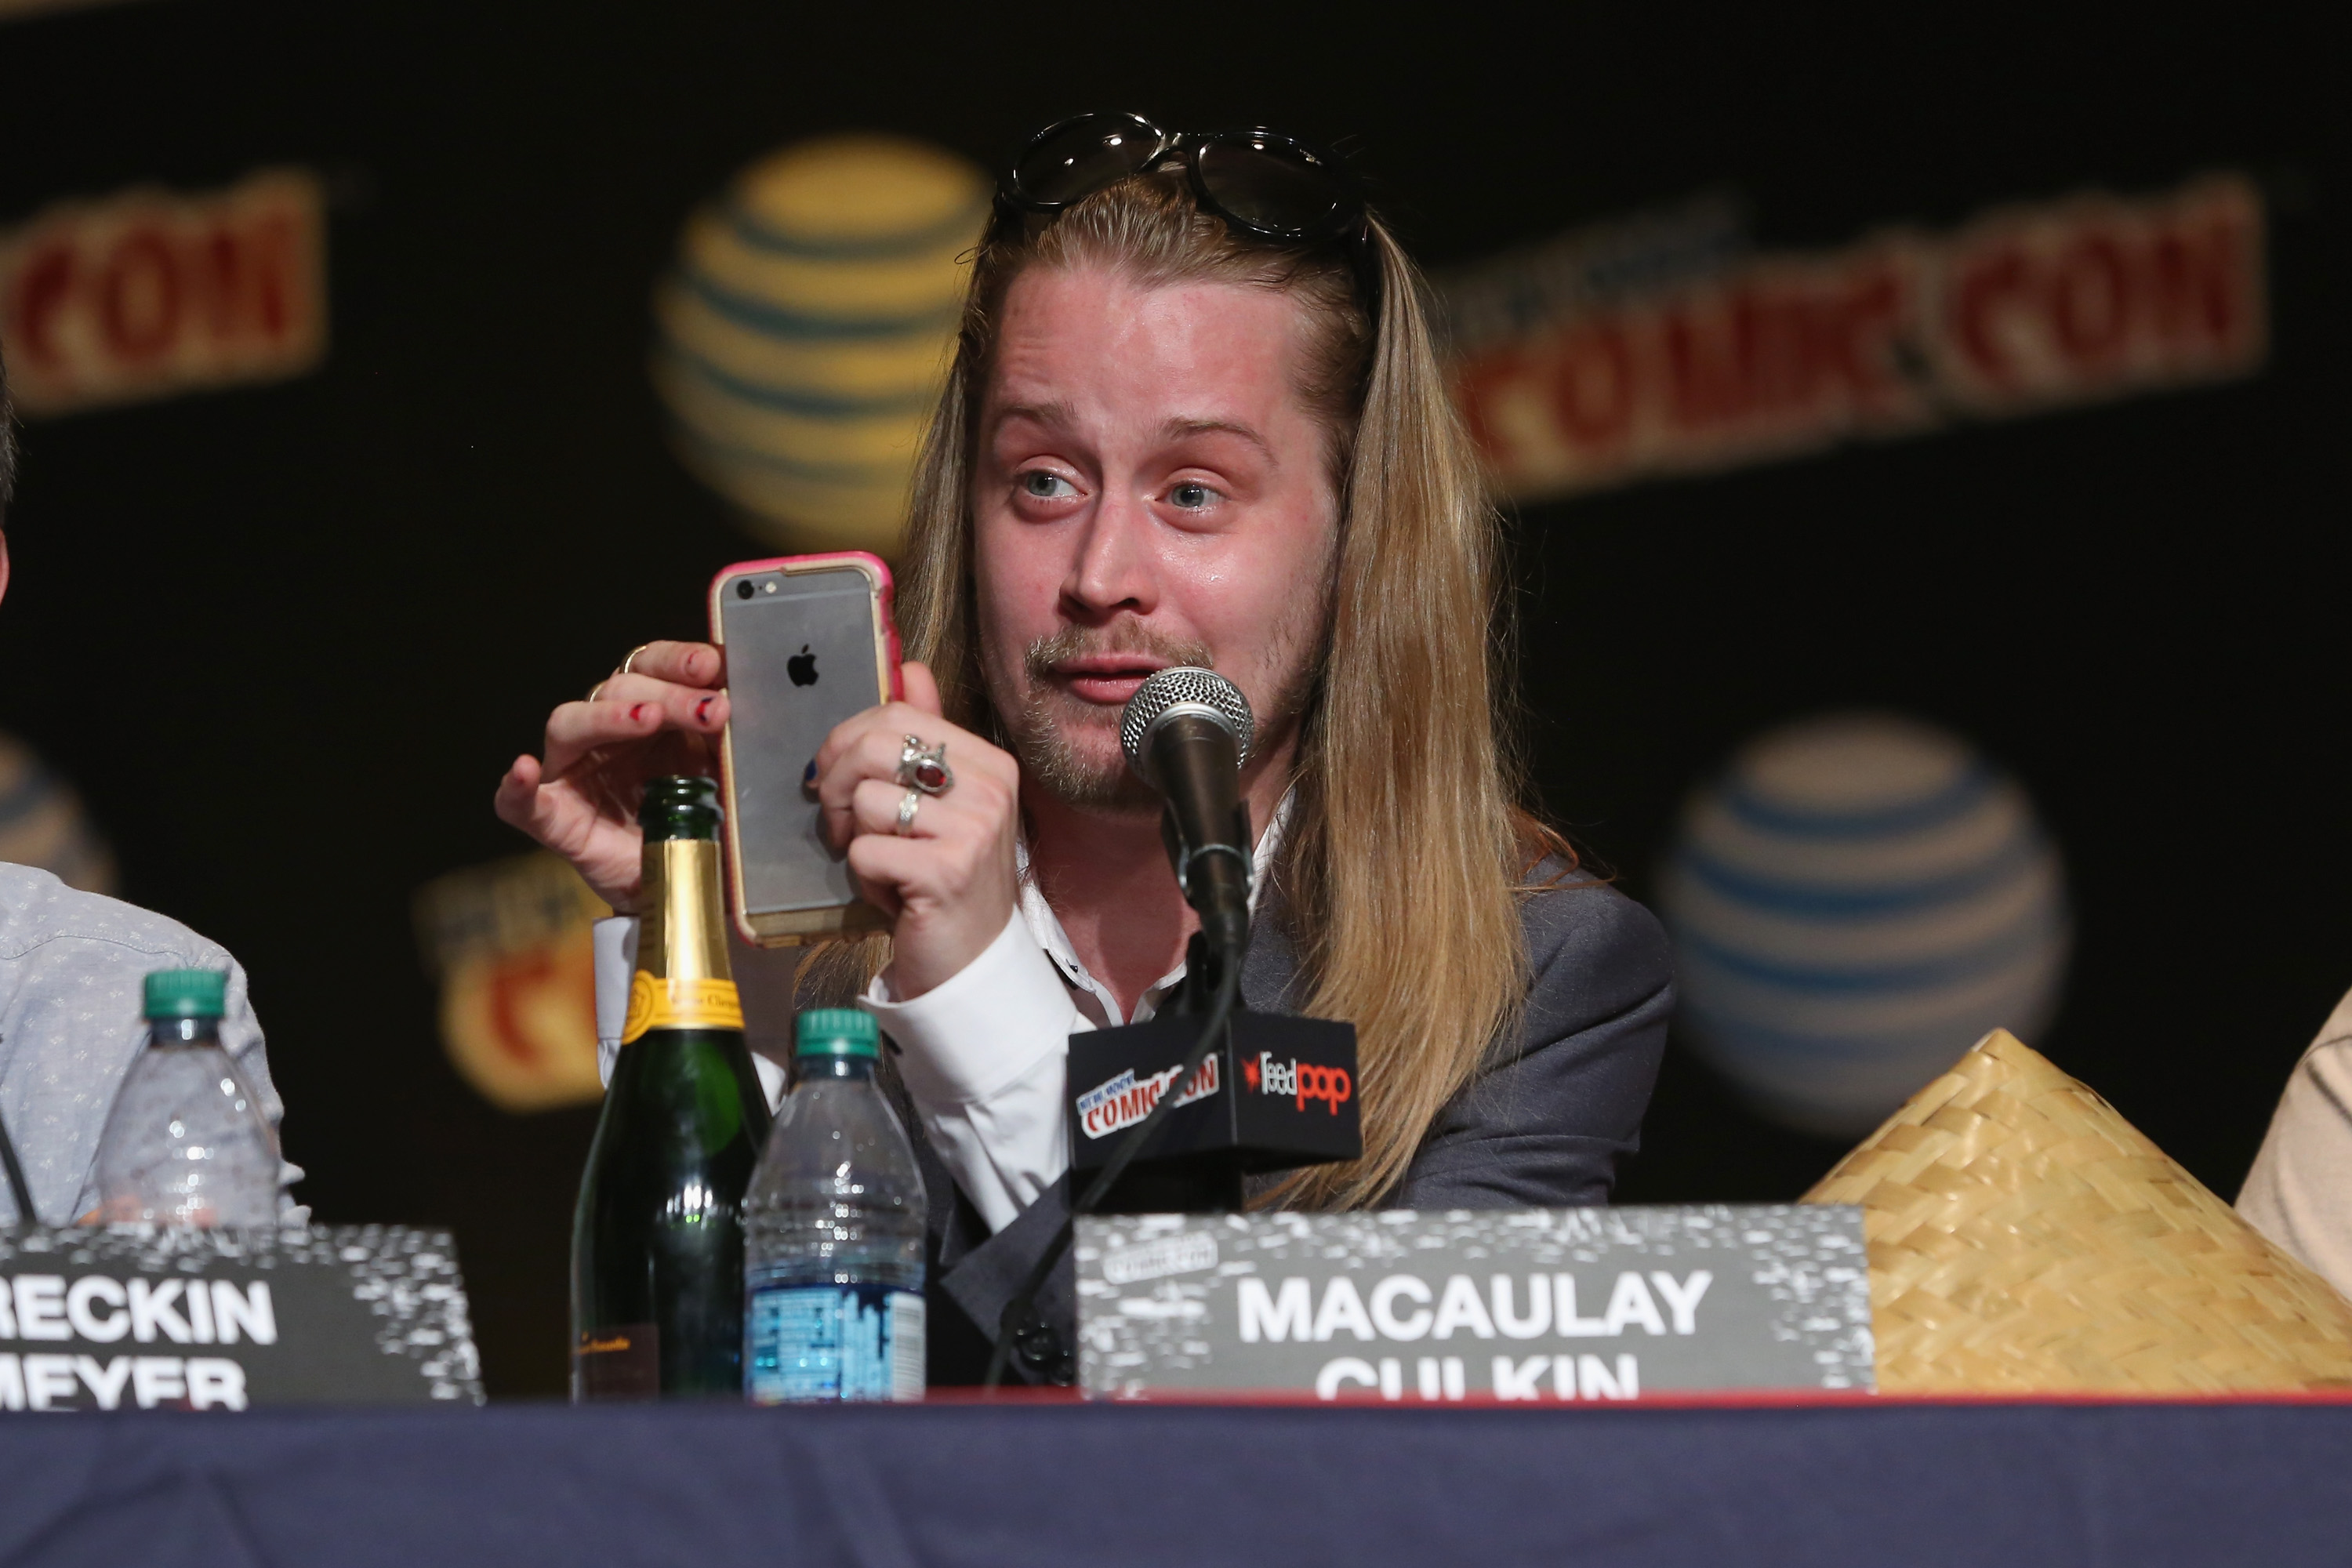 GettyImages 492054692 Macaulay Culkin Finally Addresses Heroin Rumours